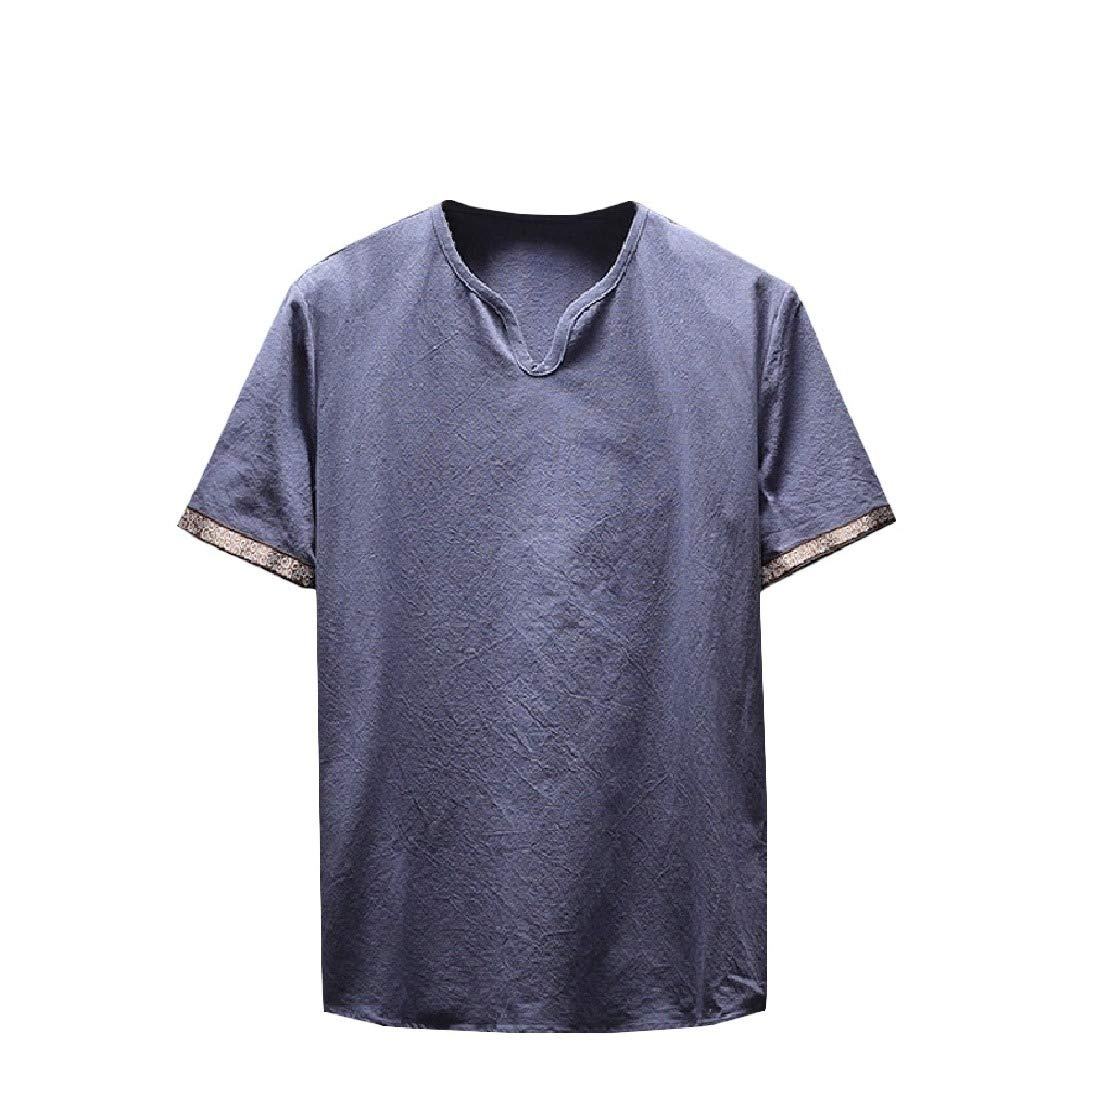 Winwinus Mens Pure Silm Fit Cotton Linen V-Neck Chinese Style T-Shirt Top